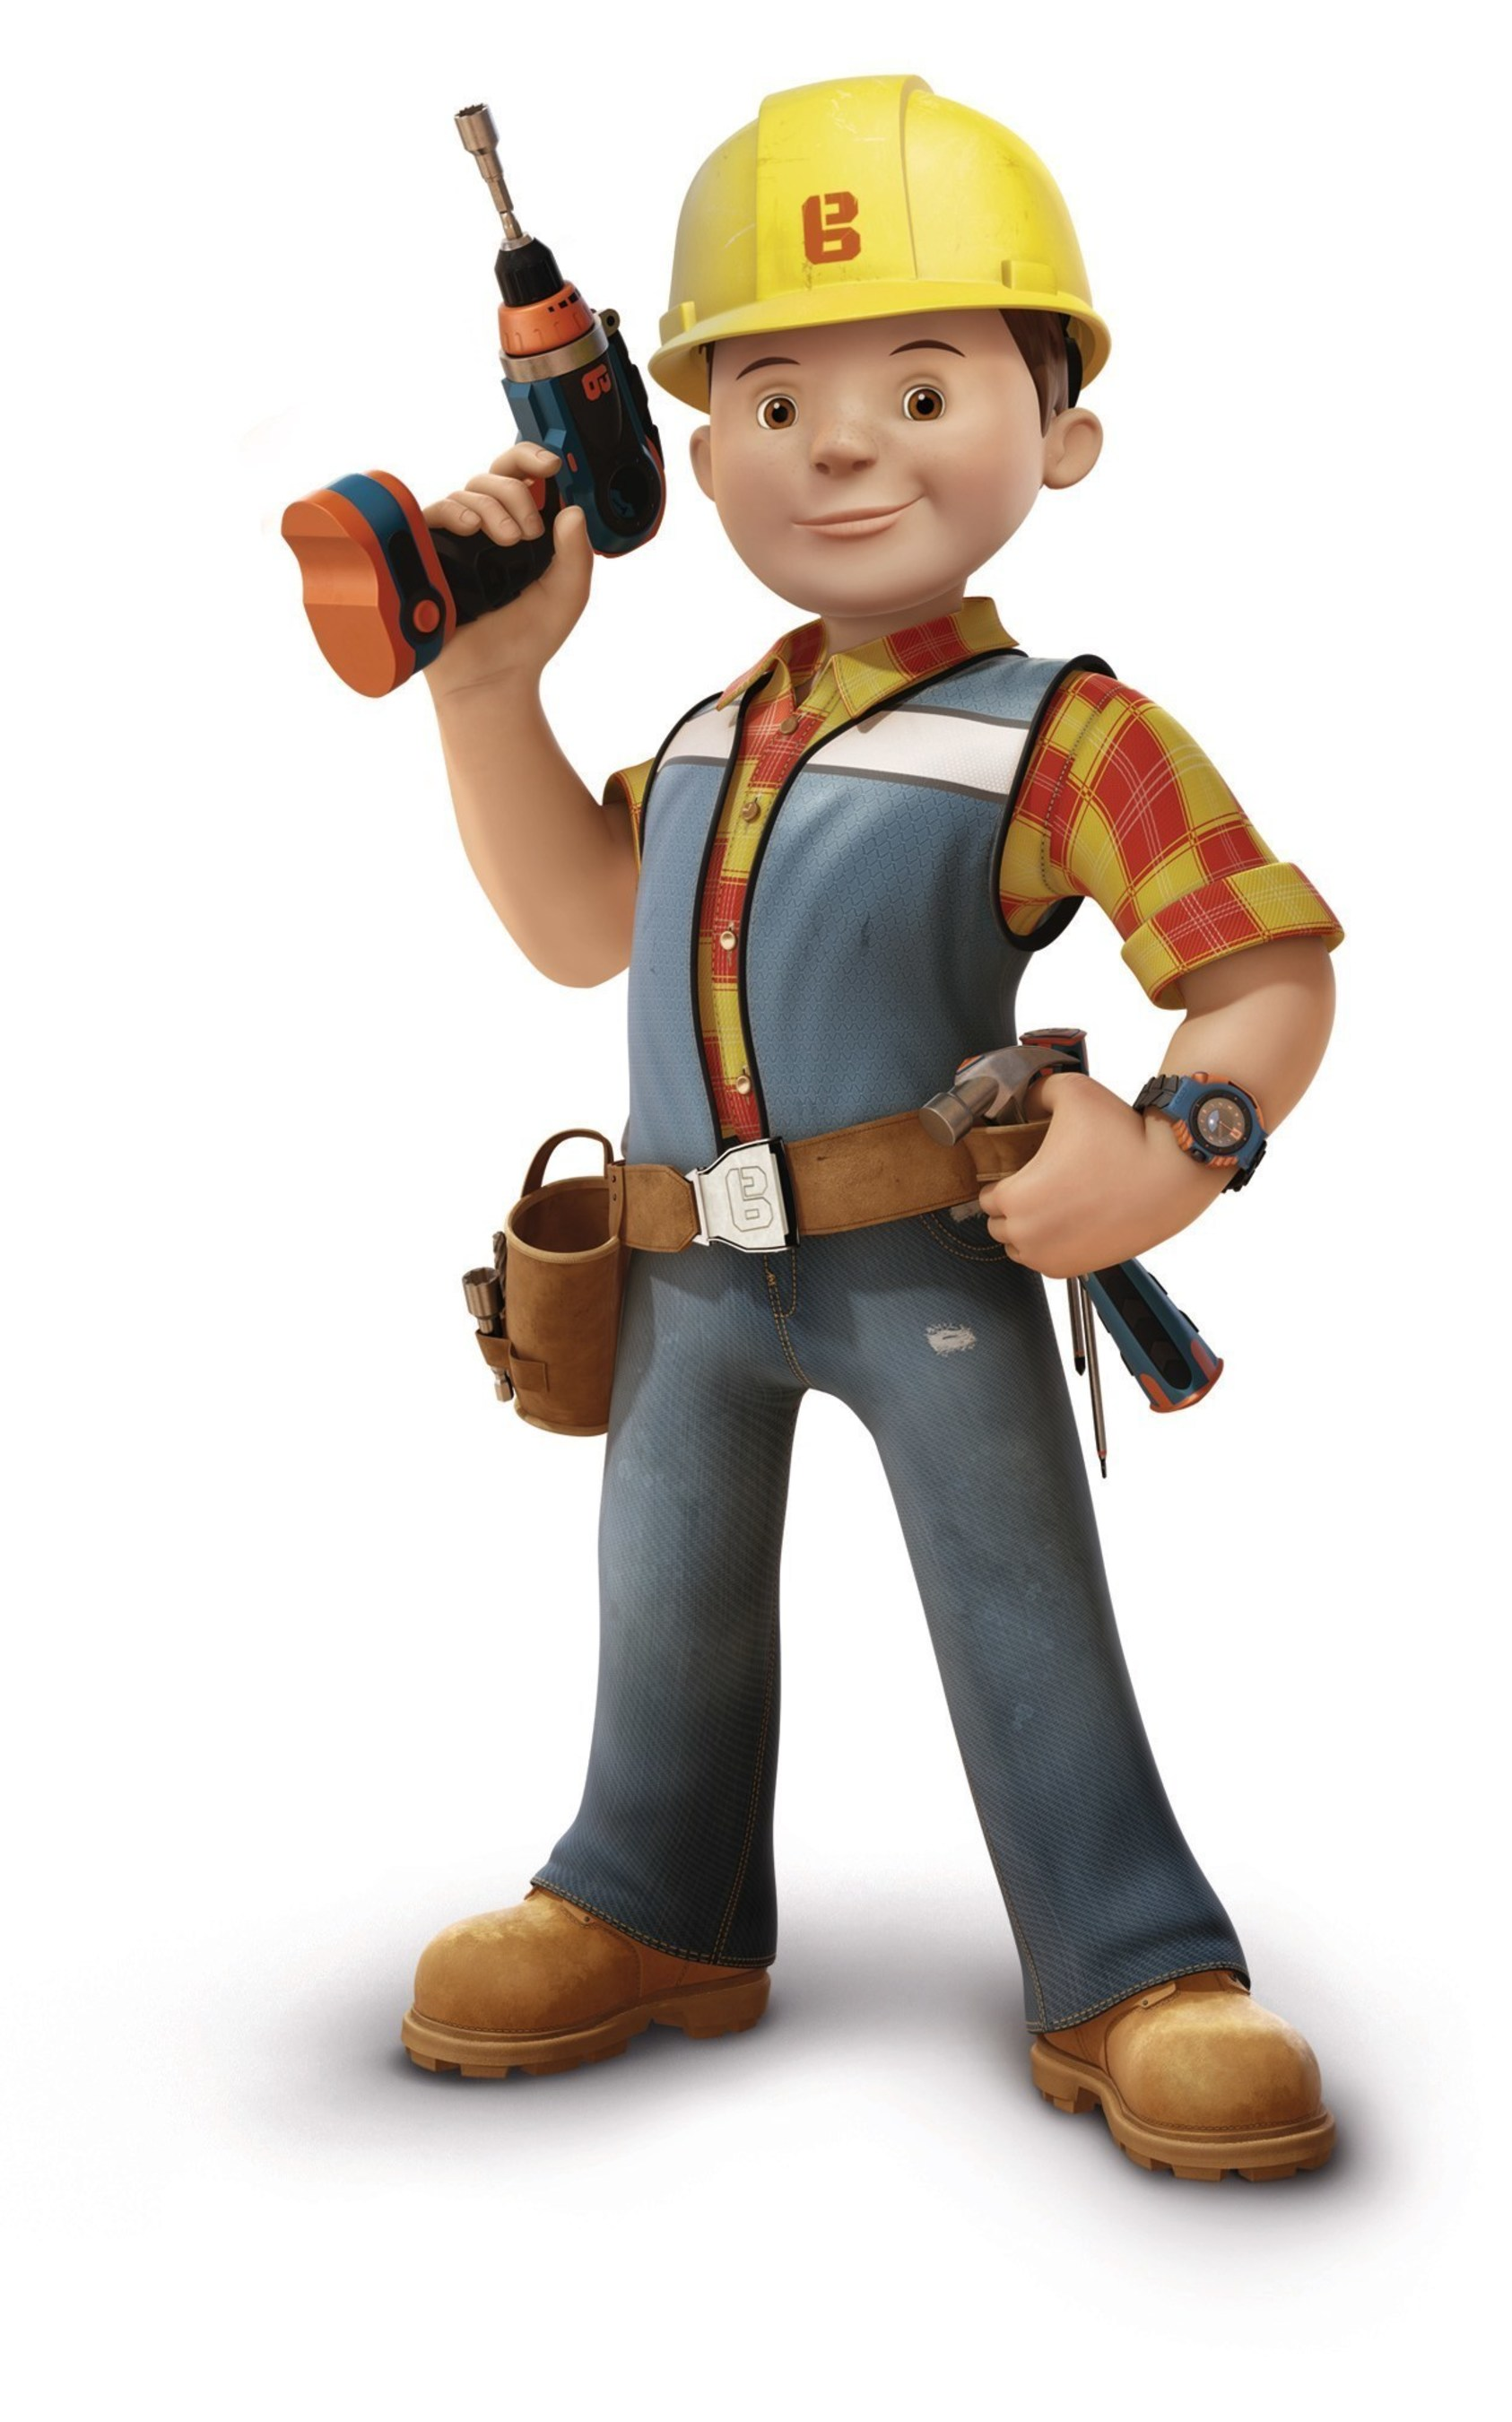 Bob the builder is back with brand new content bringing Www builder